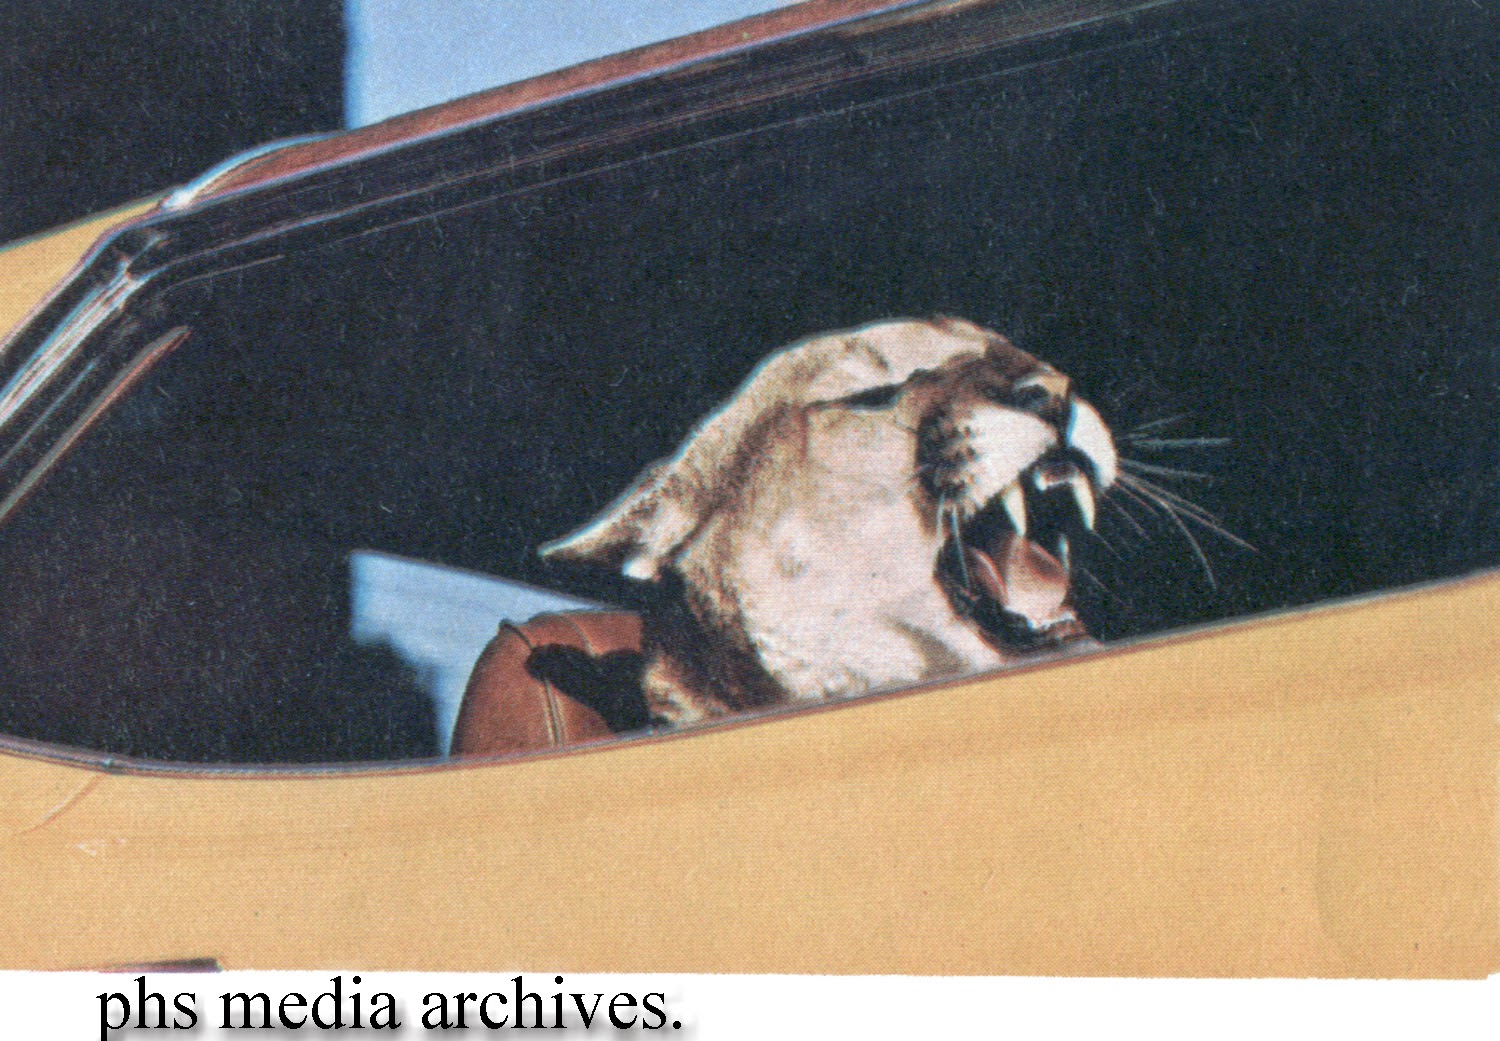 Promofile at the sign of the cat mercurys cougar logo promofile at the sign of the cat mercurys cougar logo publicscrutiny Gallery